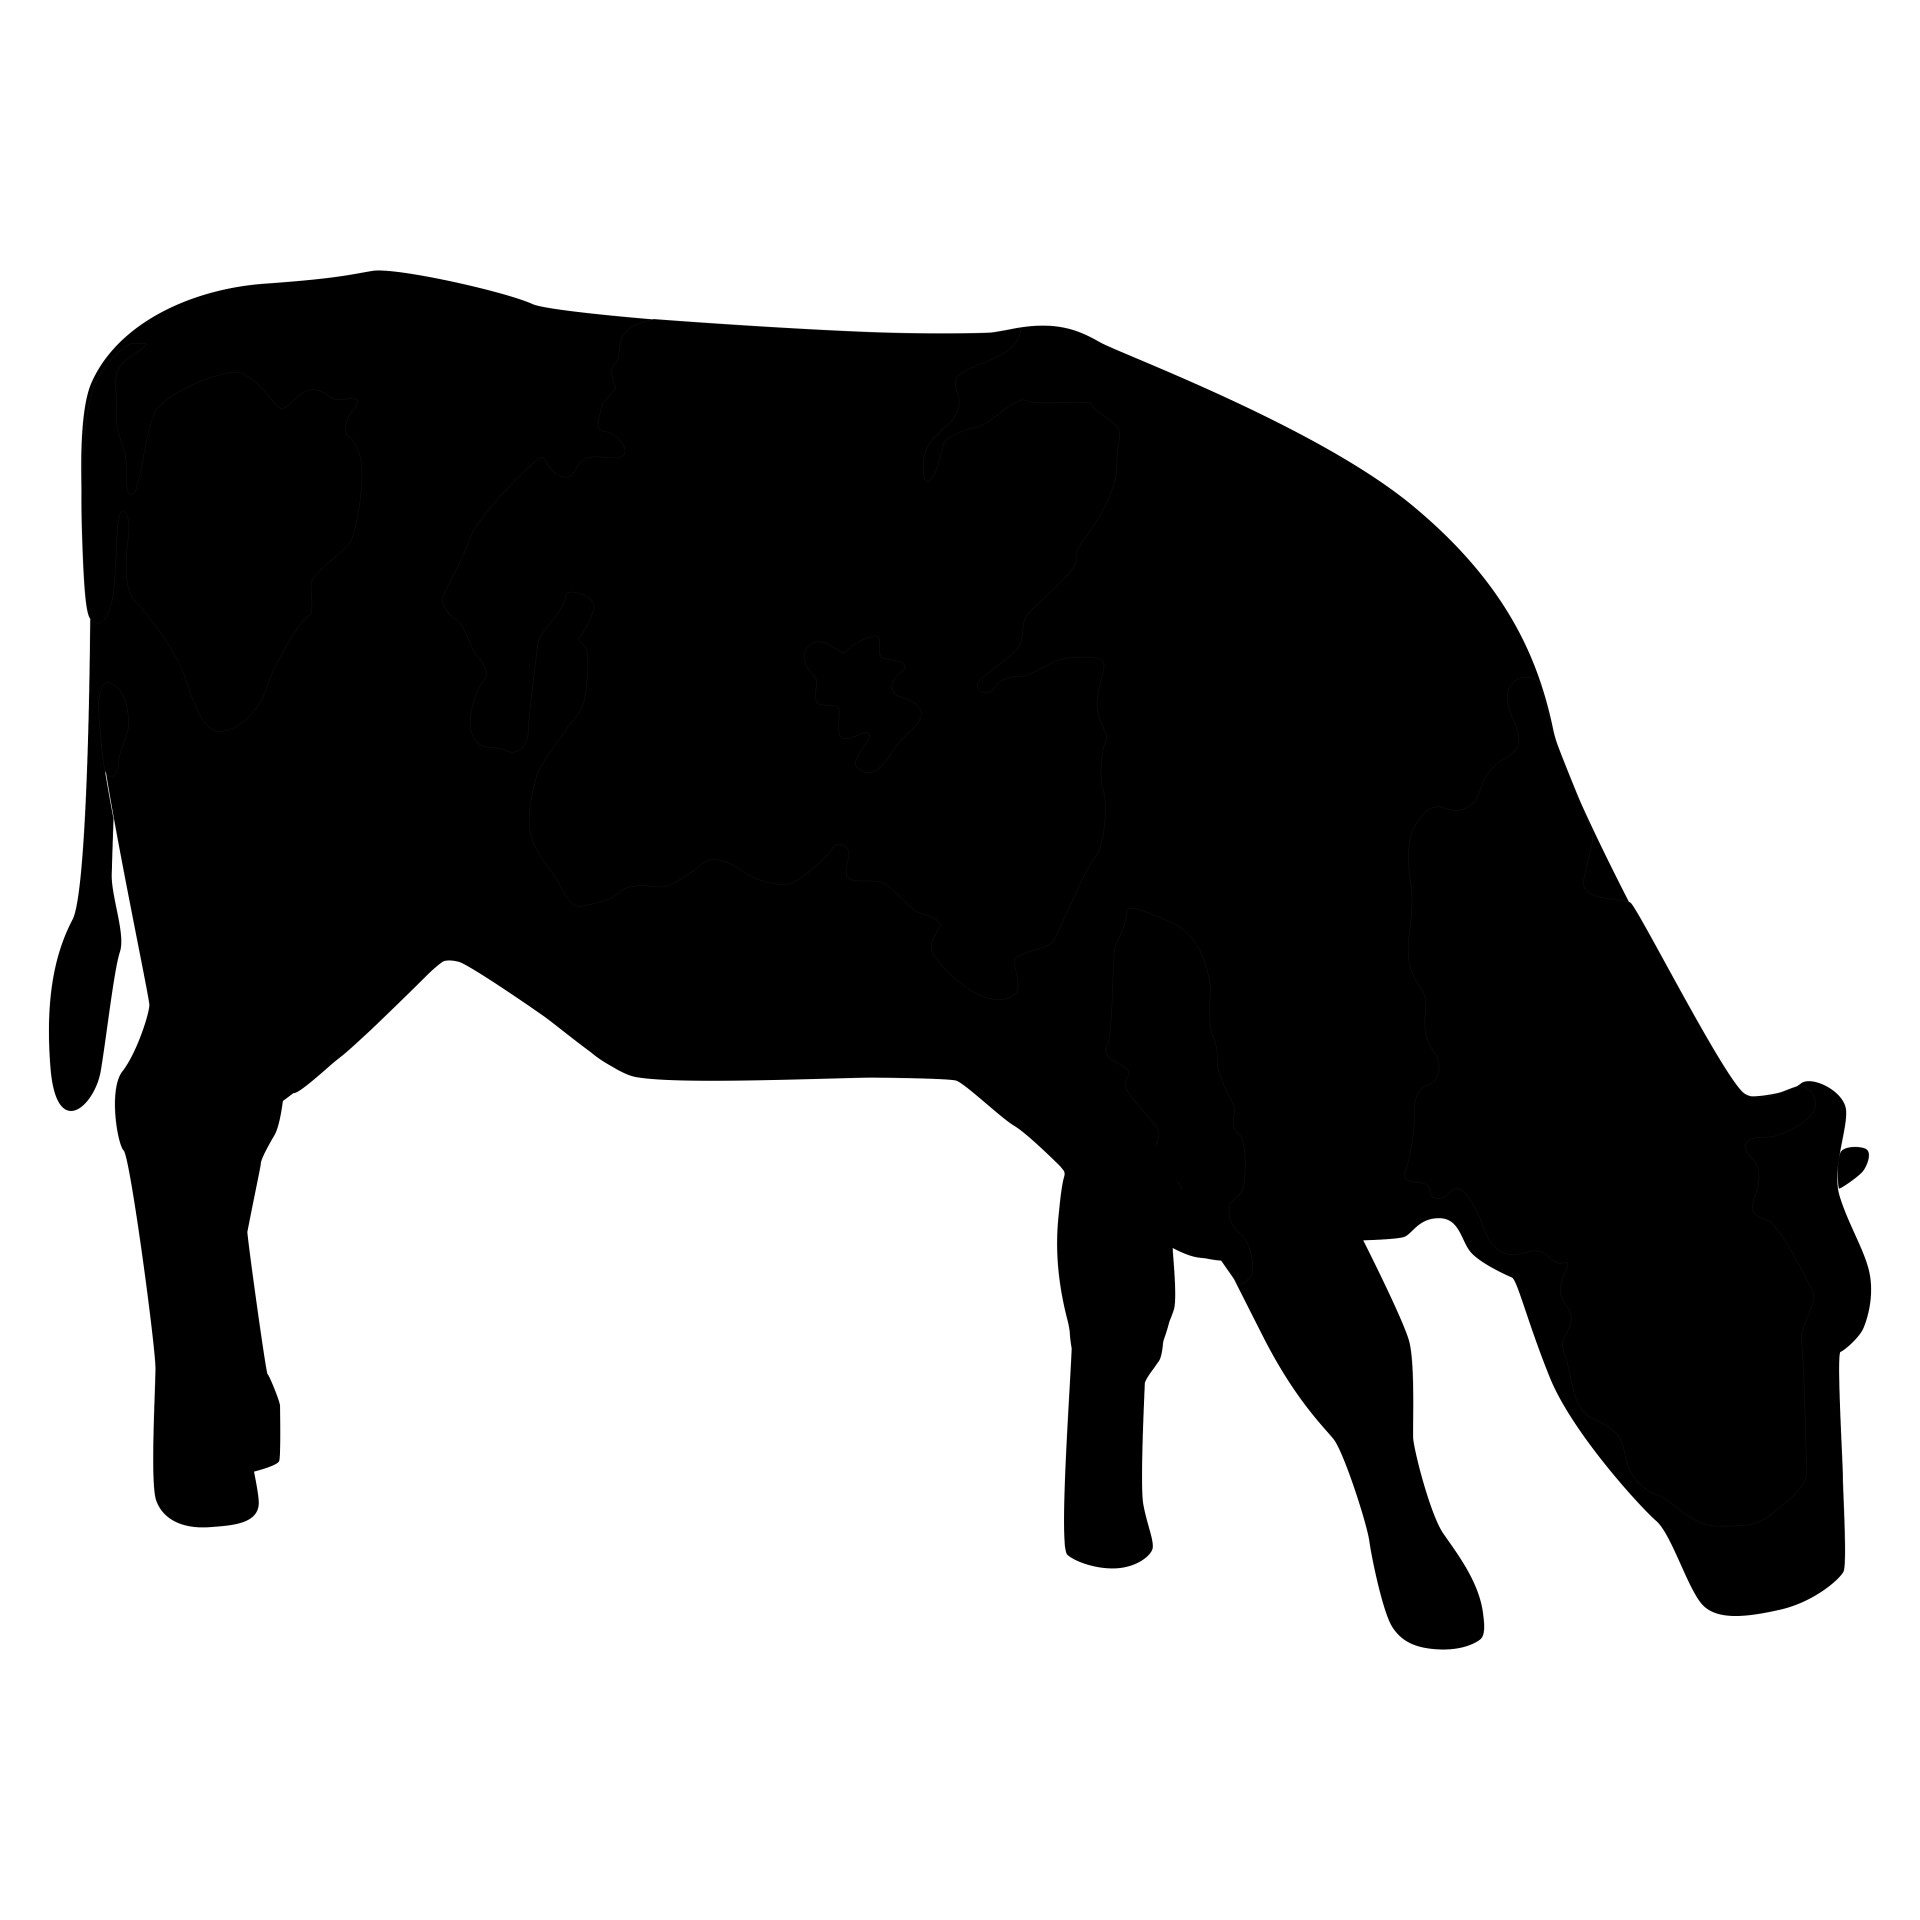 Cow Silhouette Free Stock Photo.